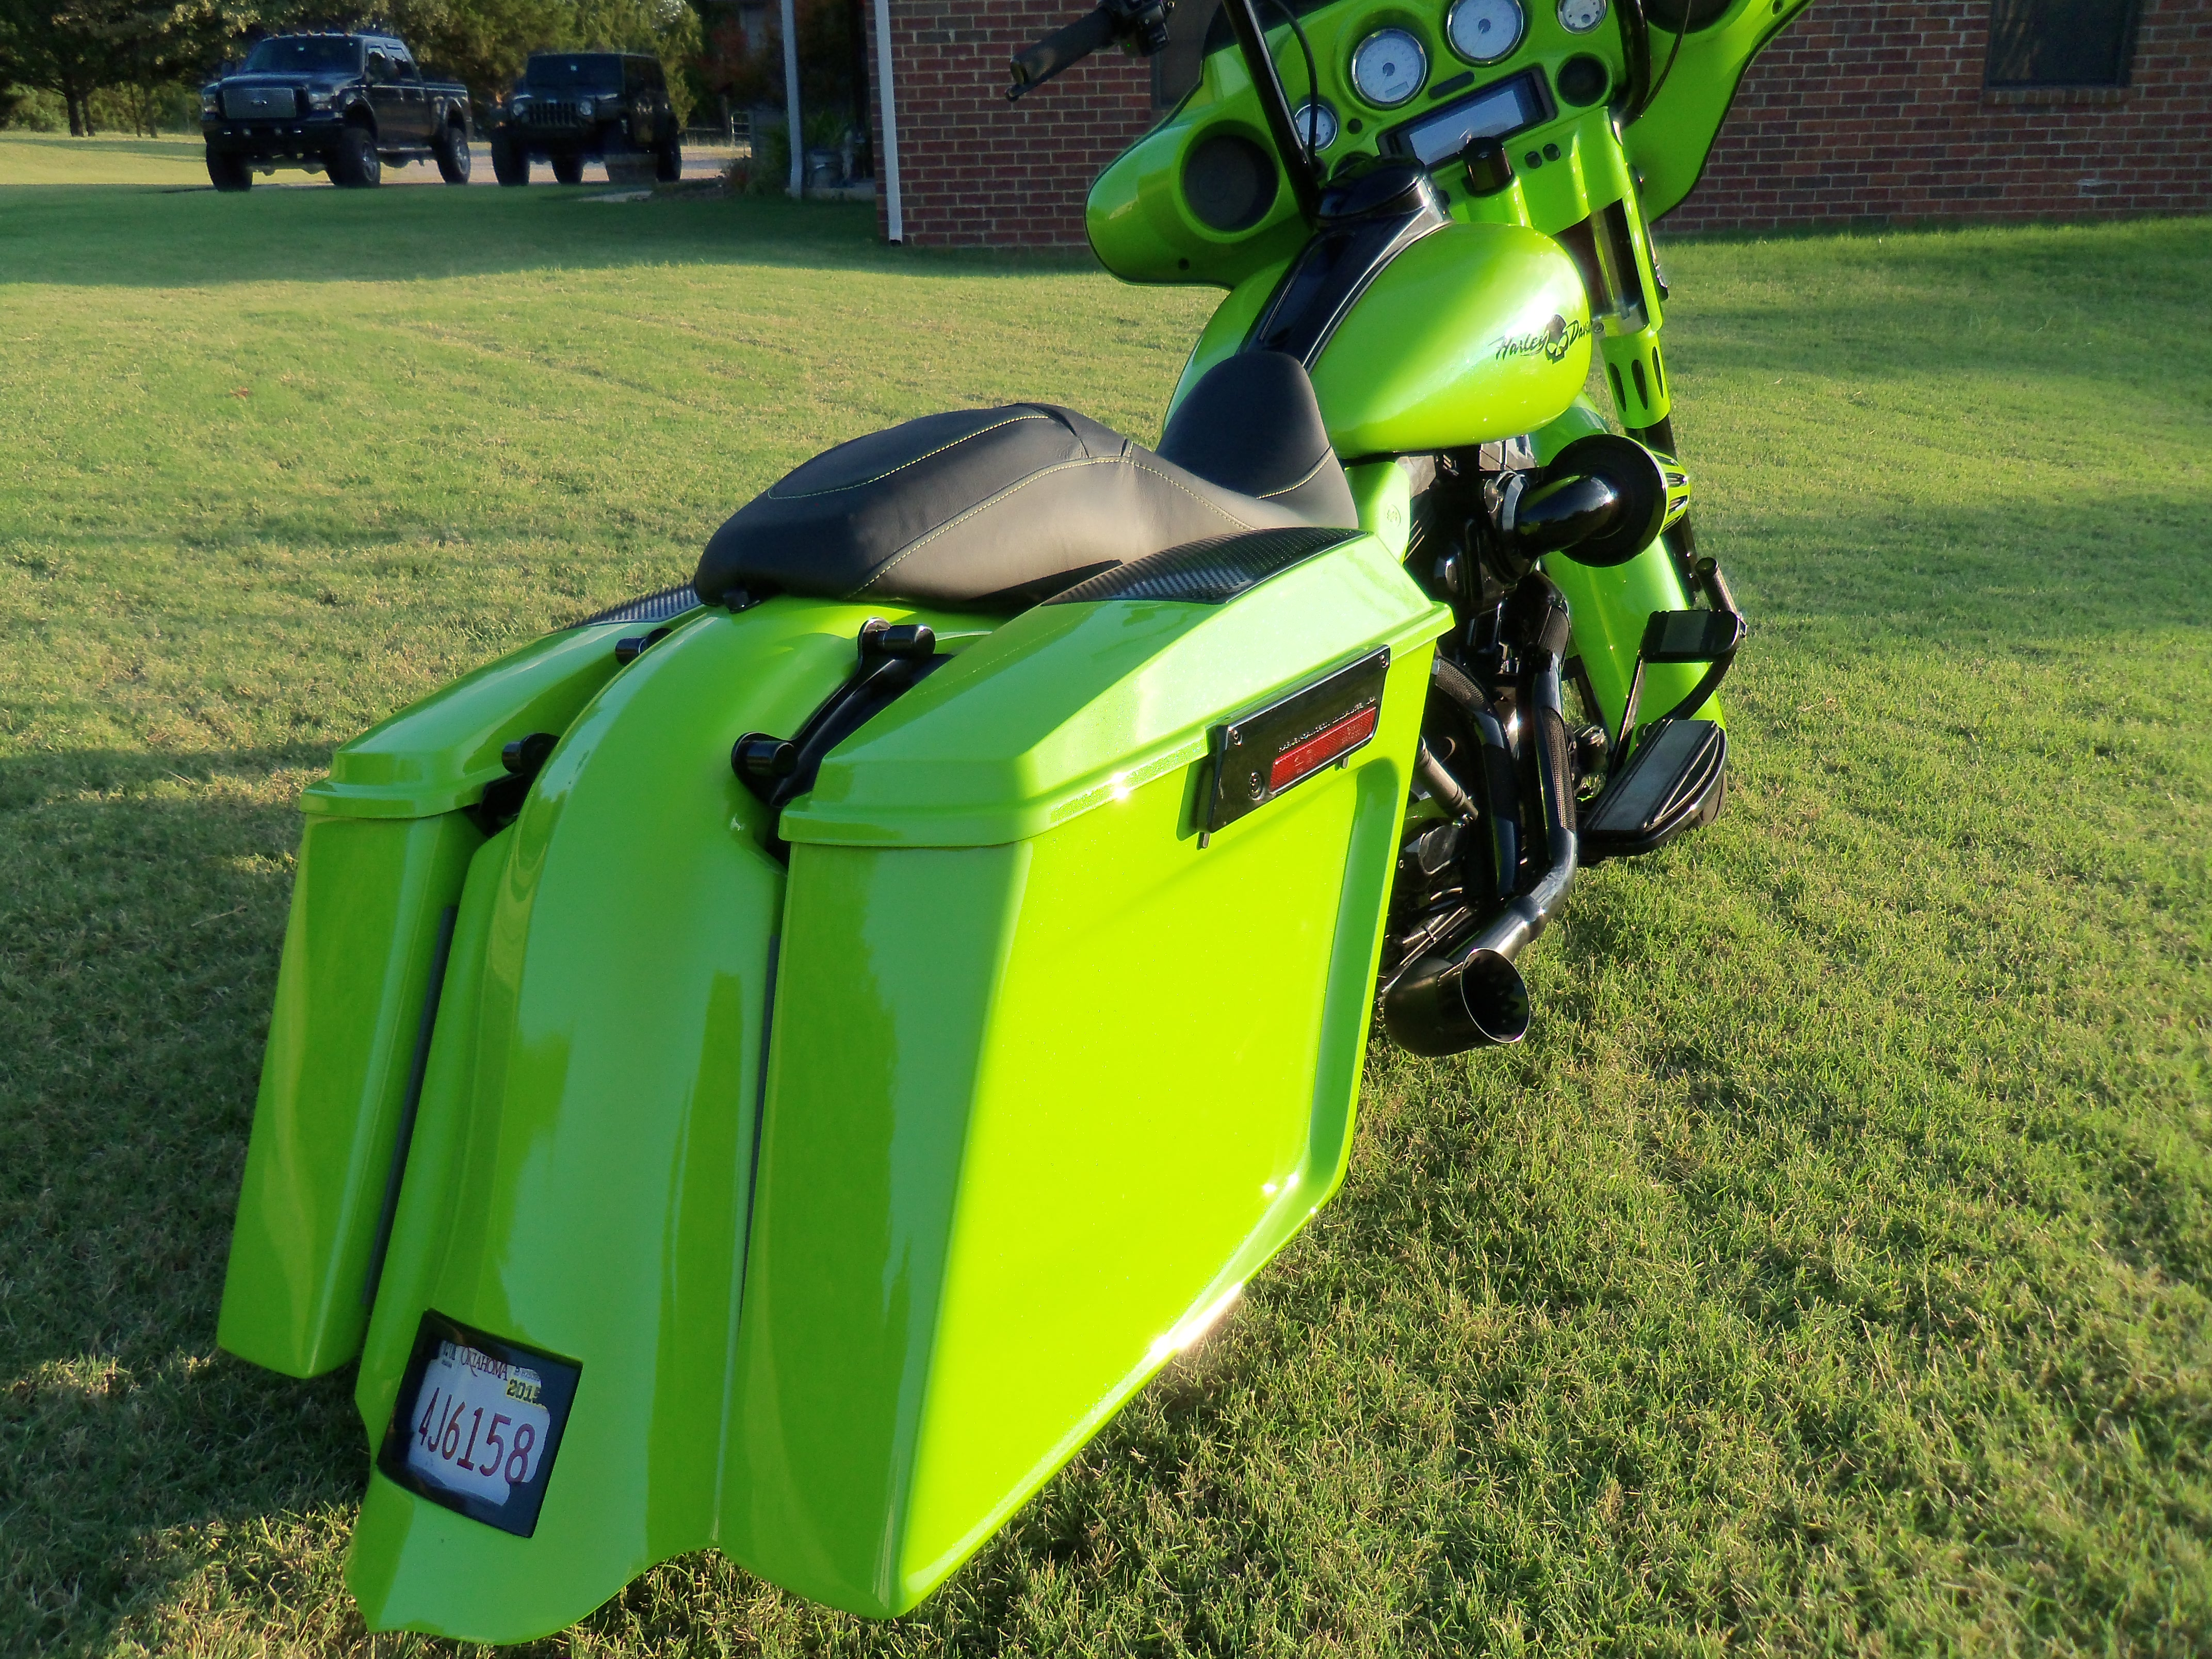 The Green Bagger